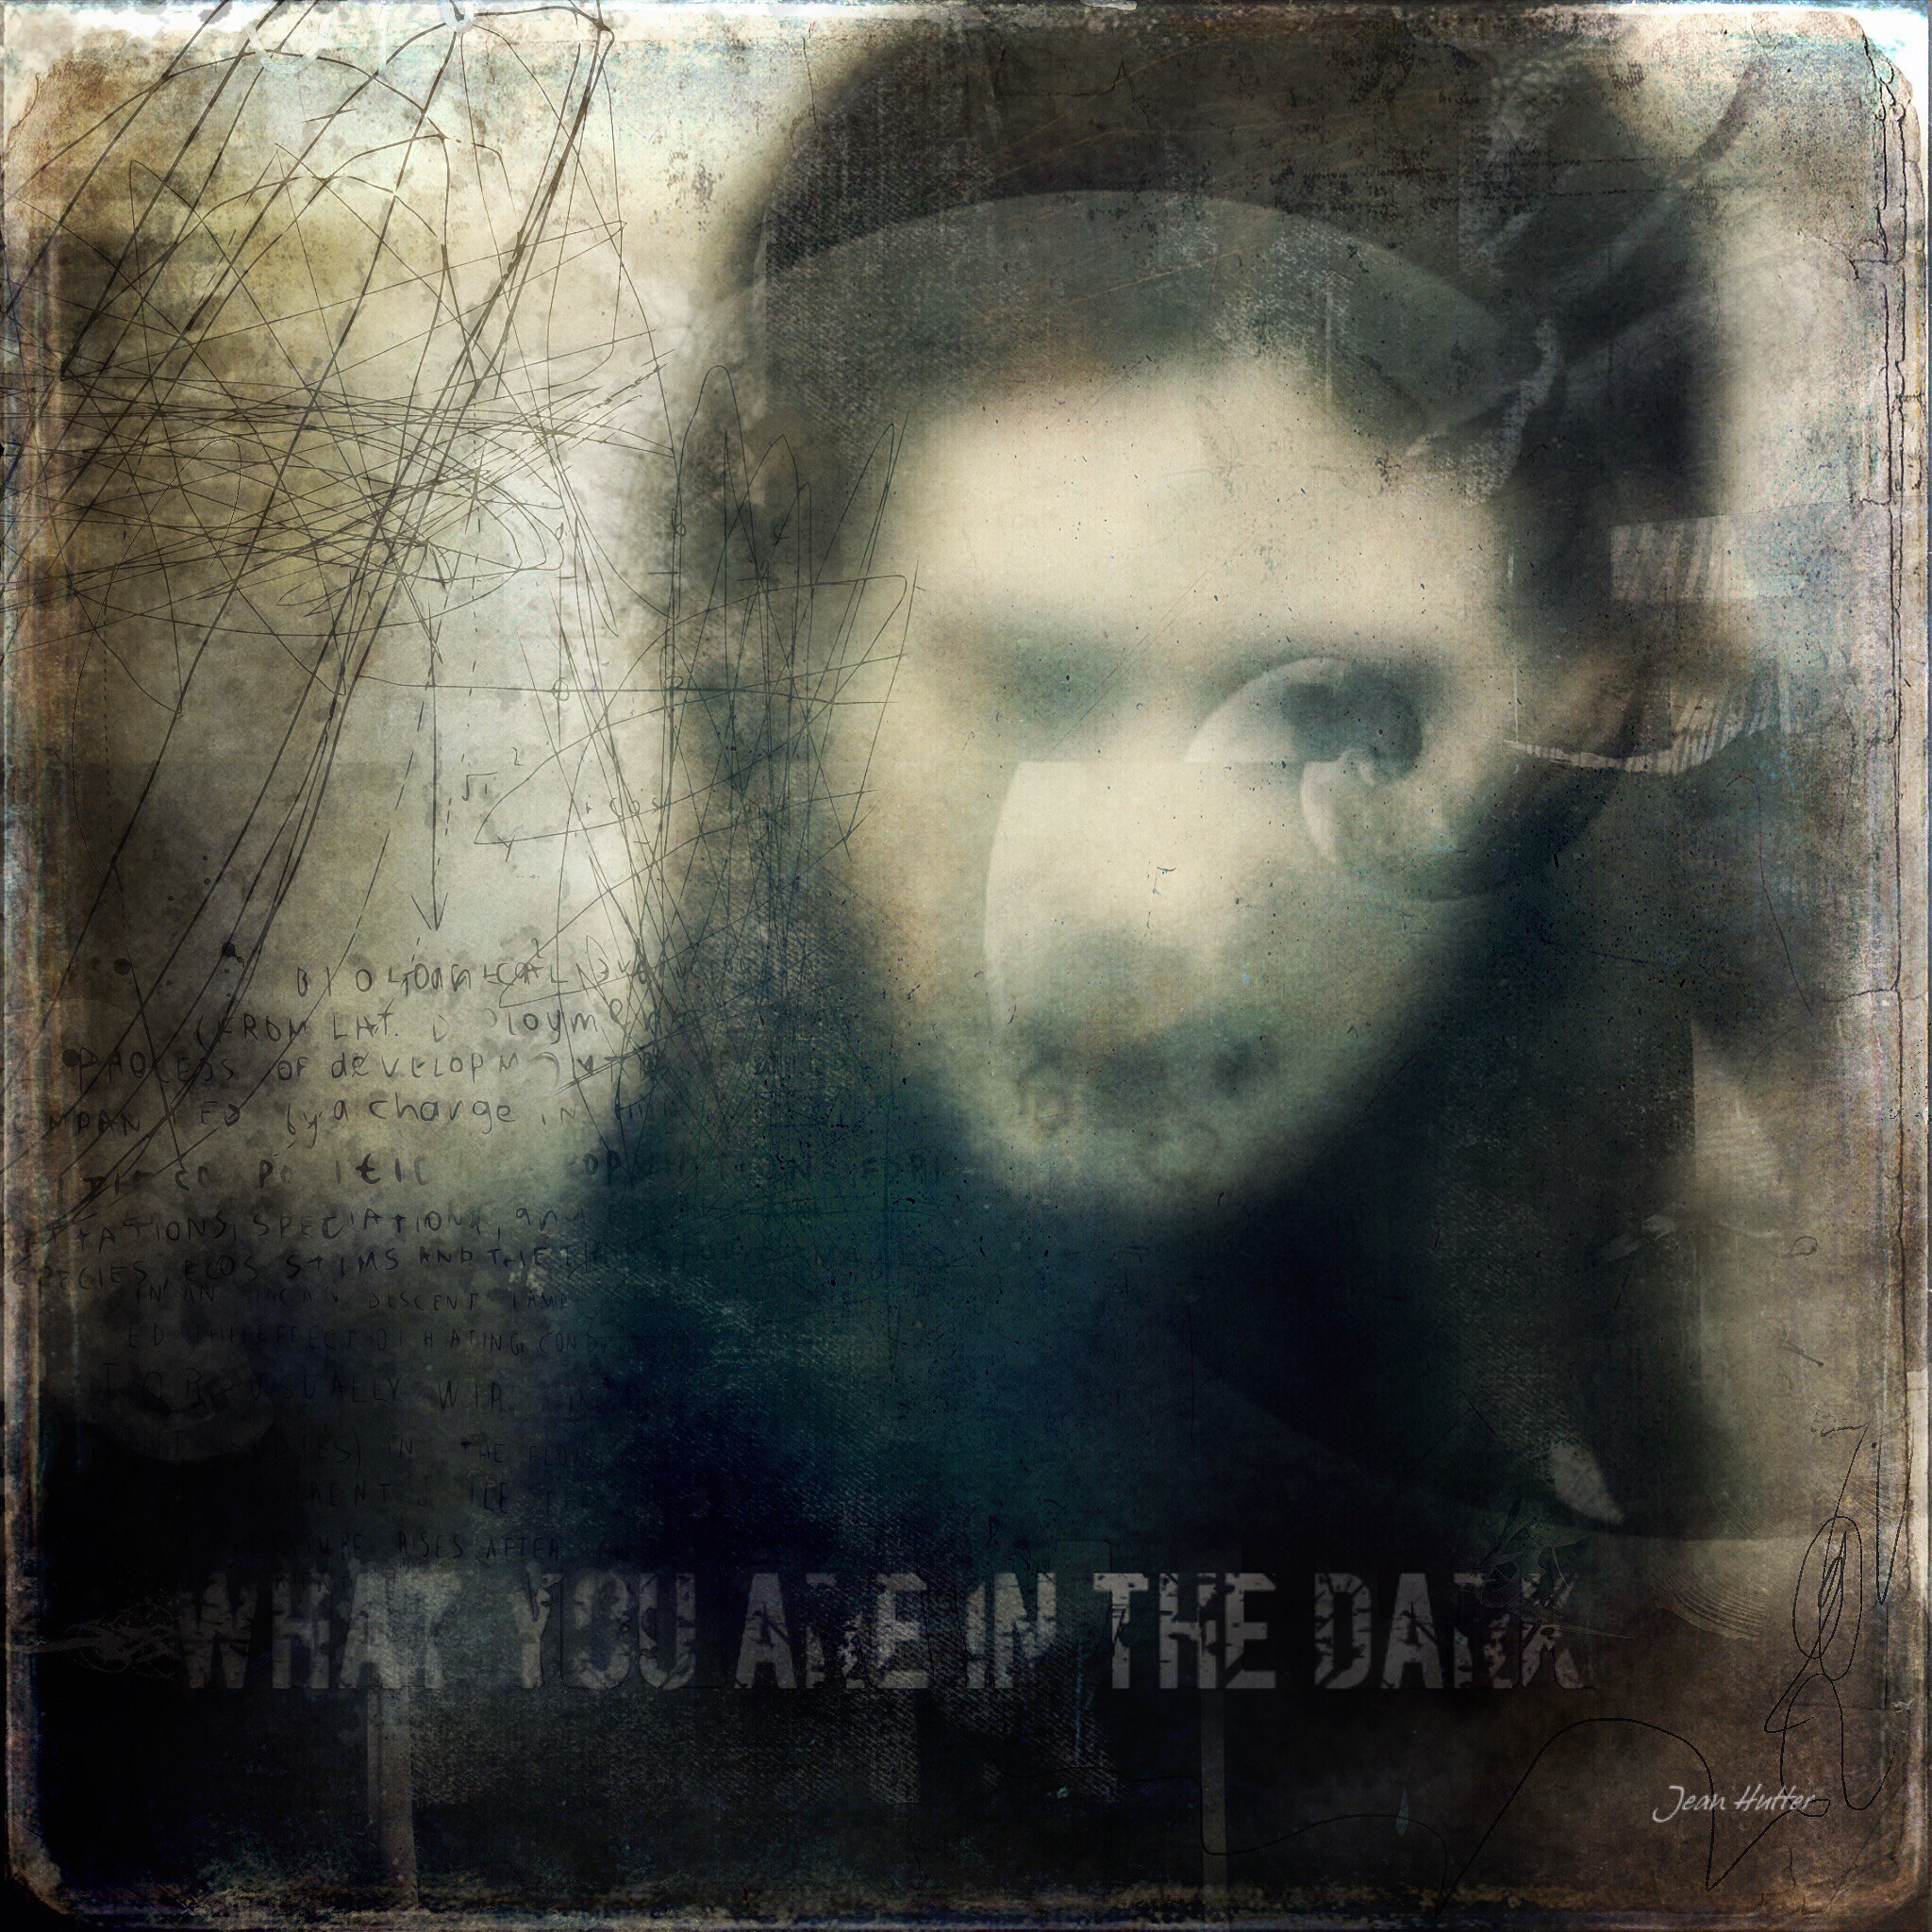 What You Are In The Dark